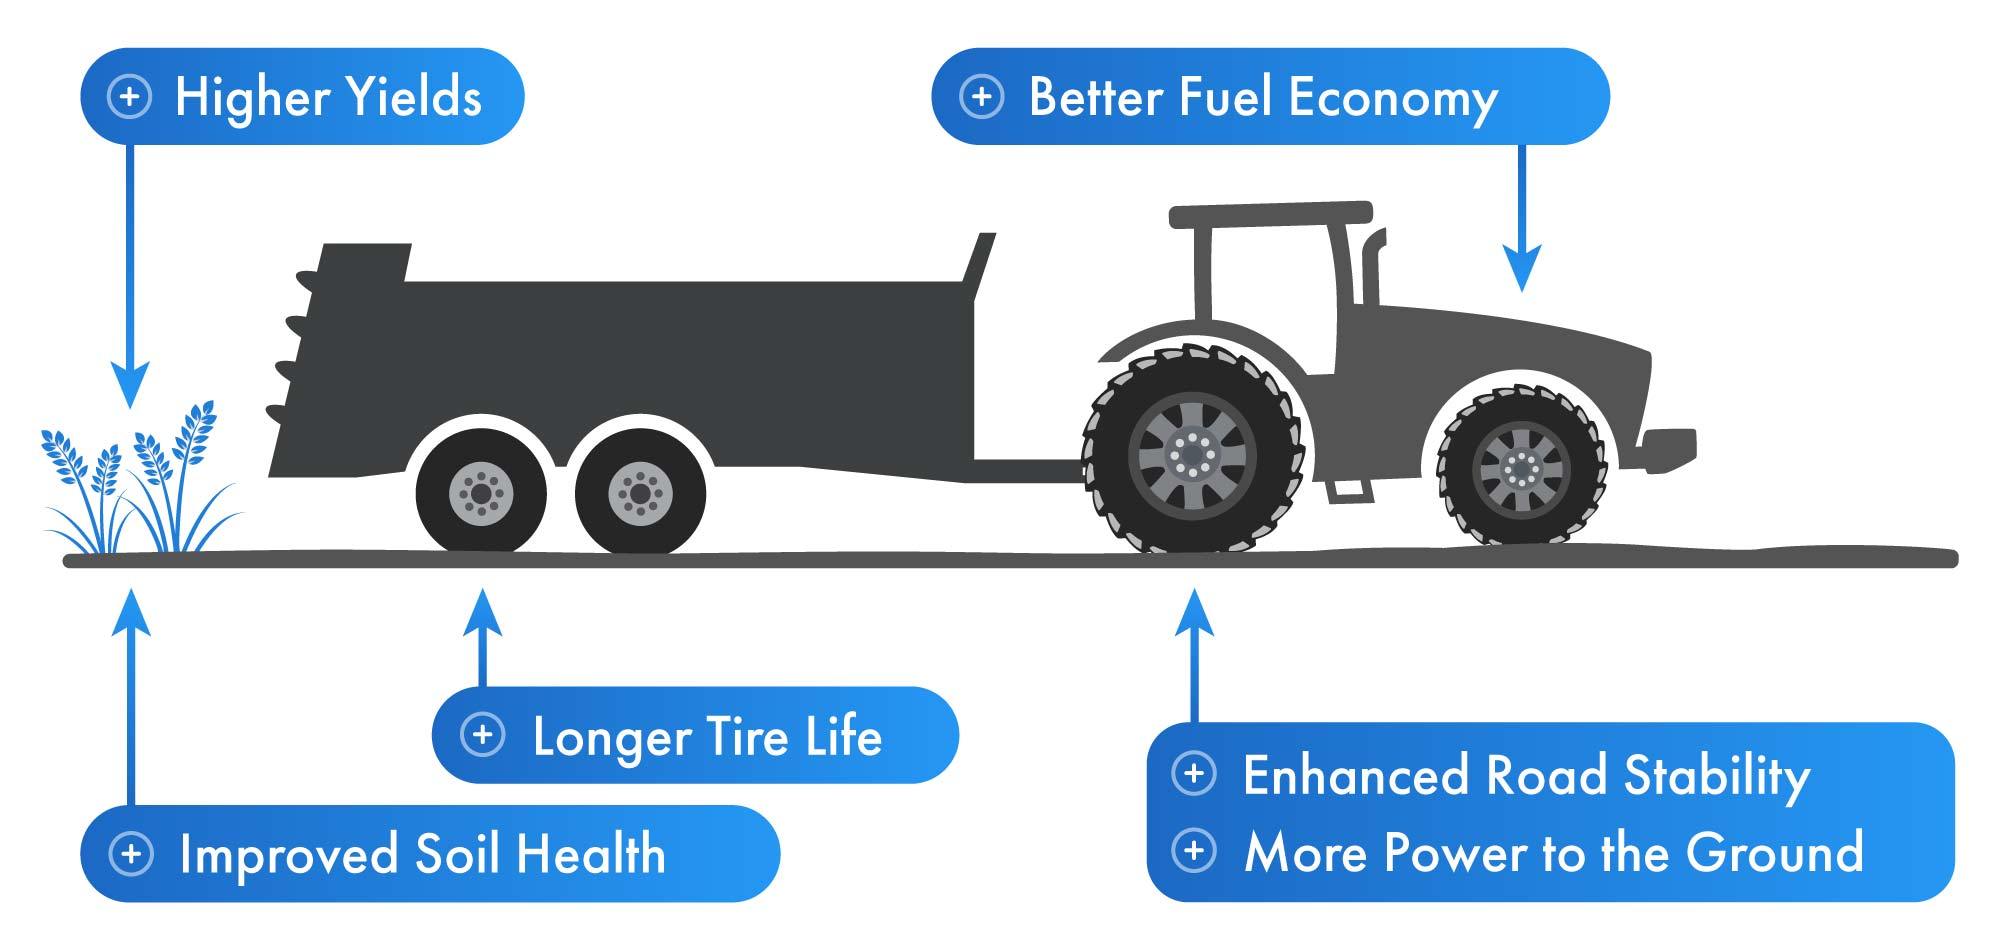 A central tire inflation system will extend your tire's life, reduce fuel consumption, improve soil health, increase your yields and more.